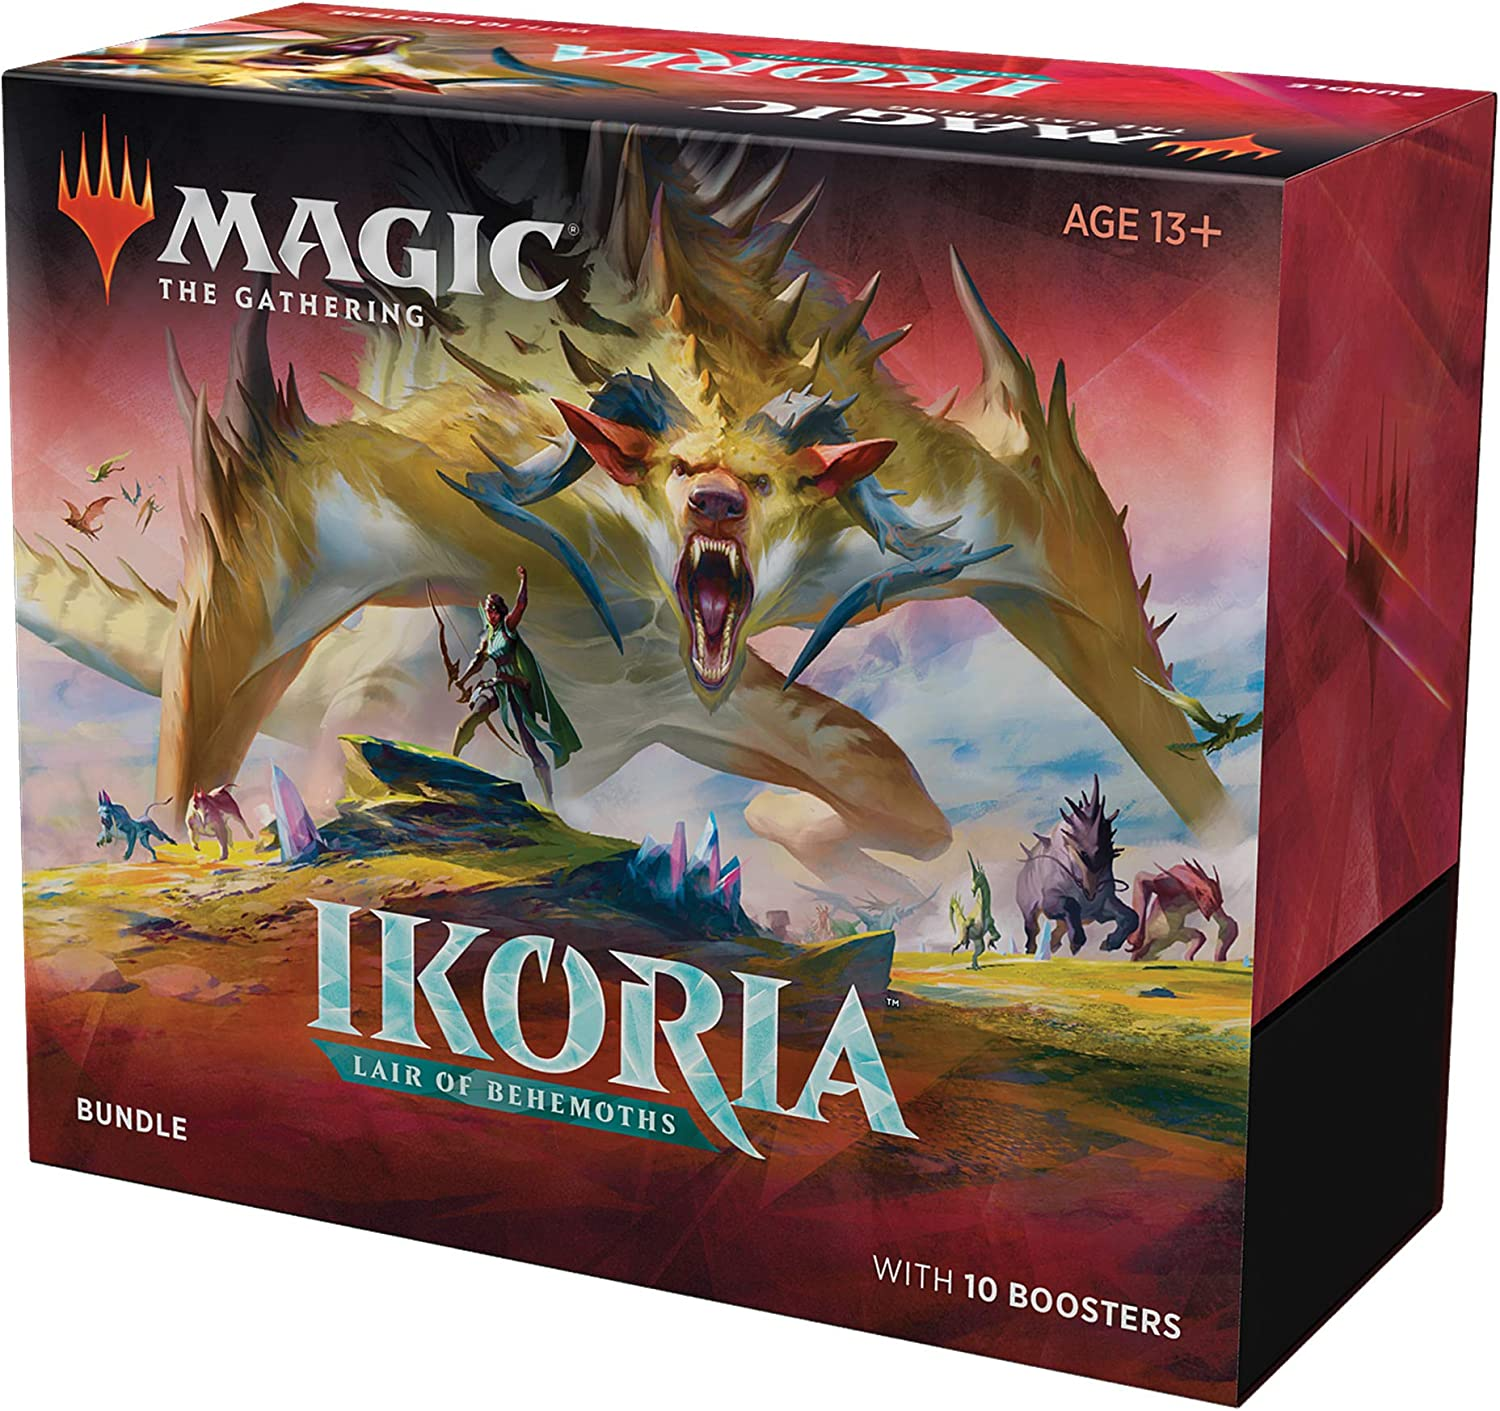 Magic: The Gathering Ikoria Bundle (incluye 10 paquetes de refuerzo) , color/modelo surtido: Amazon.es: Juguetes y juegos